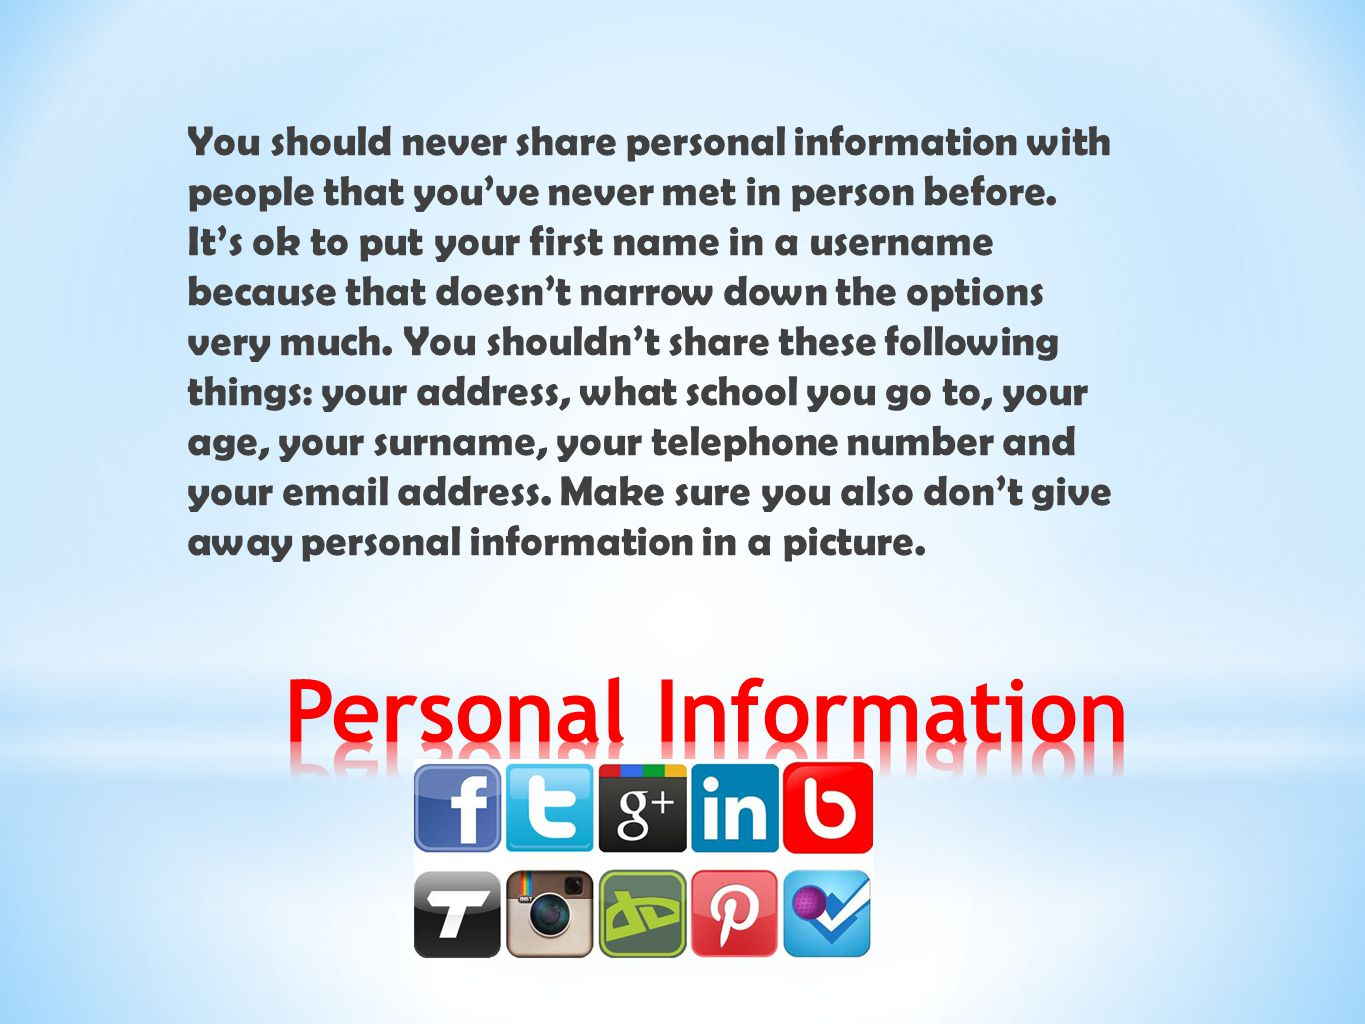 You should never share personal information with people that you've never met in person before. It's ok to put your first name in a username because that doesn't narrow down the options very much. You shouldn't share these following things: your address, what school you go to, your age, your surname, your telephone number and your email address. Make sure you also don't give away personal information in a picture.